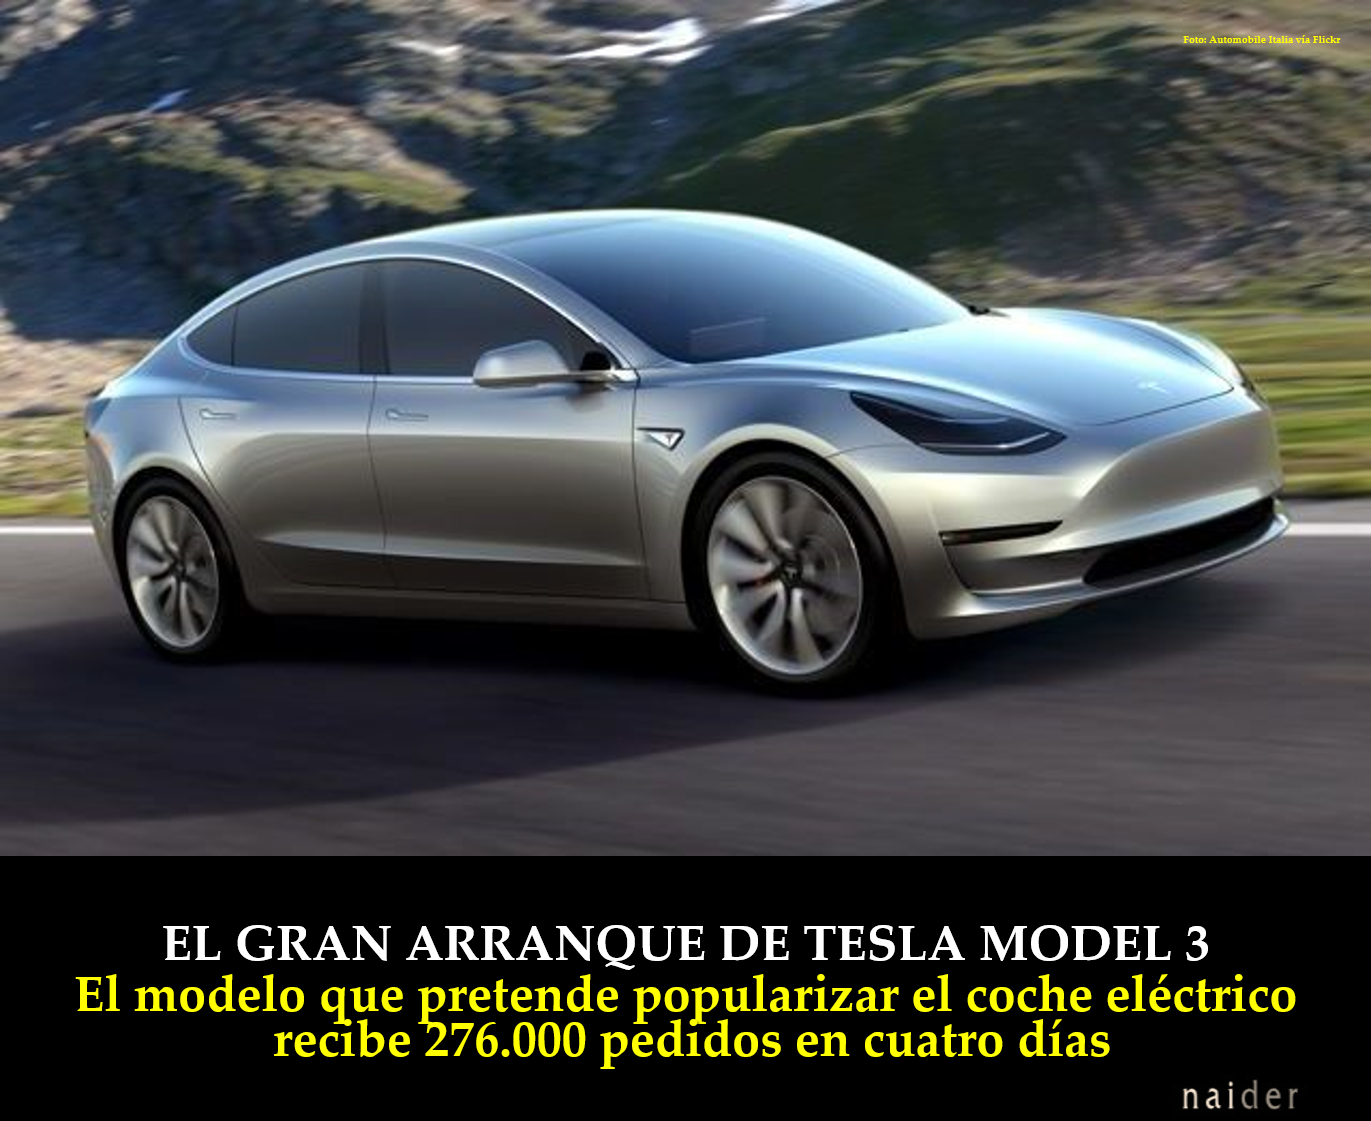 El gran arranque de Tesla Model 3